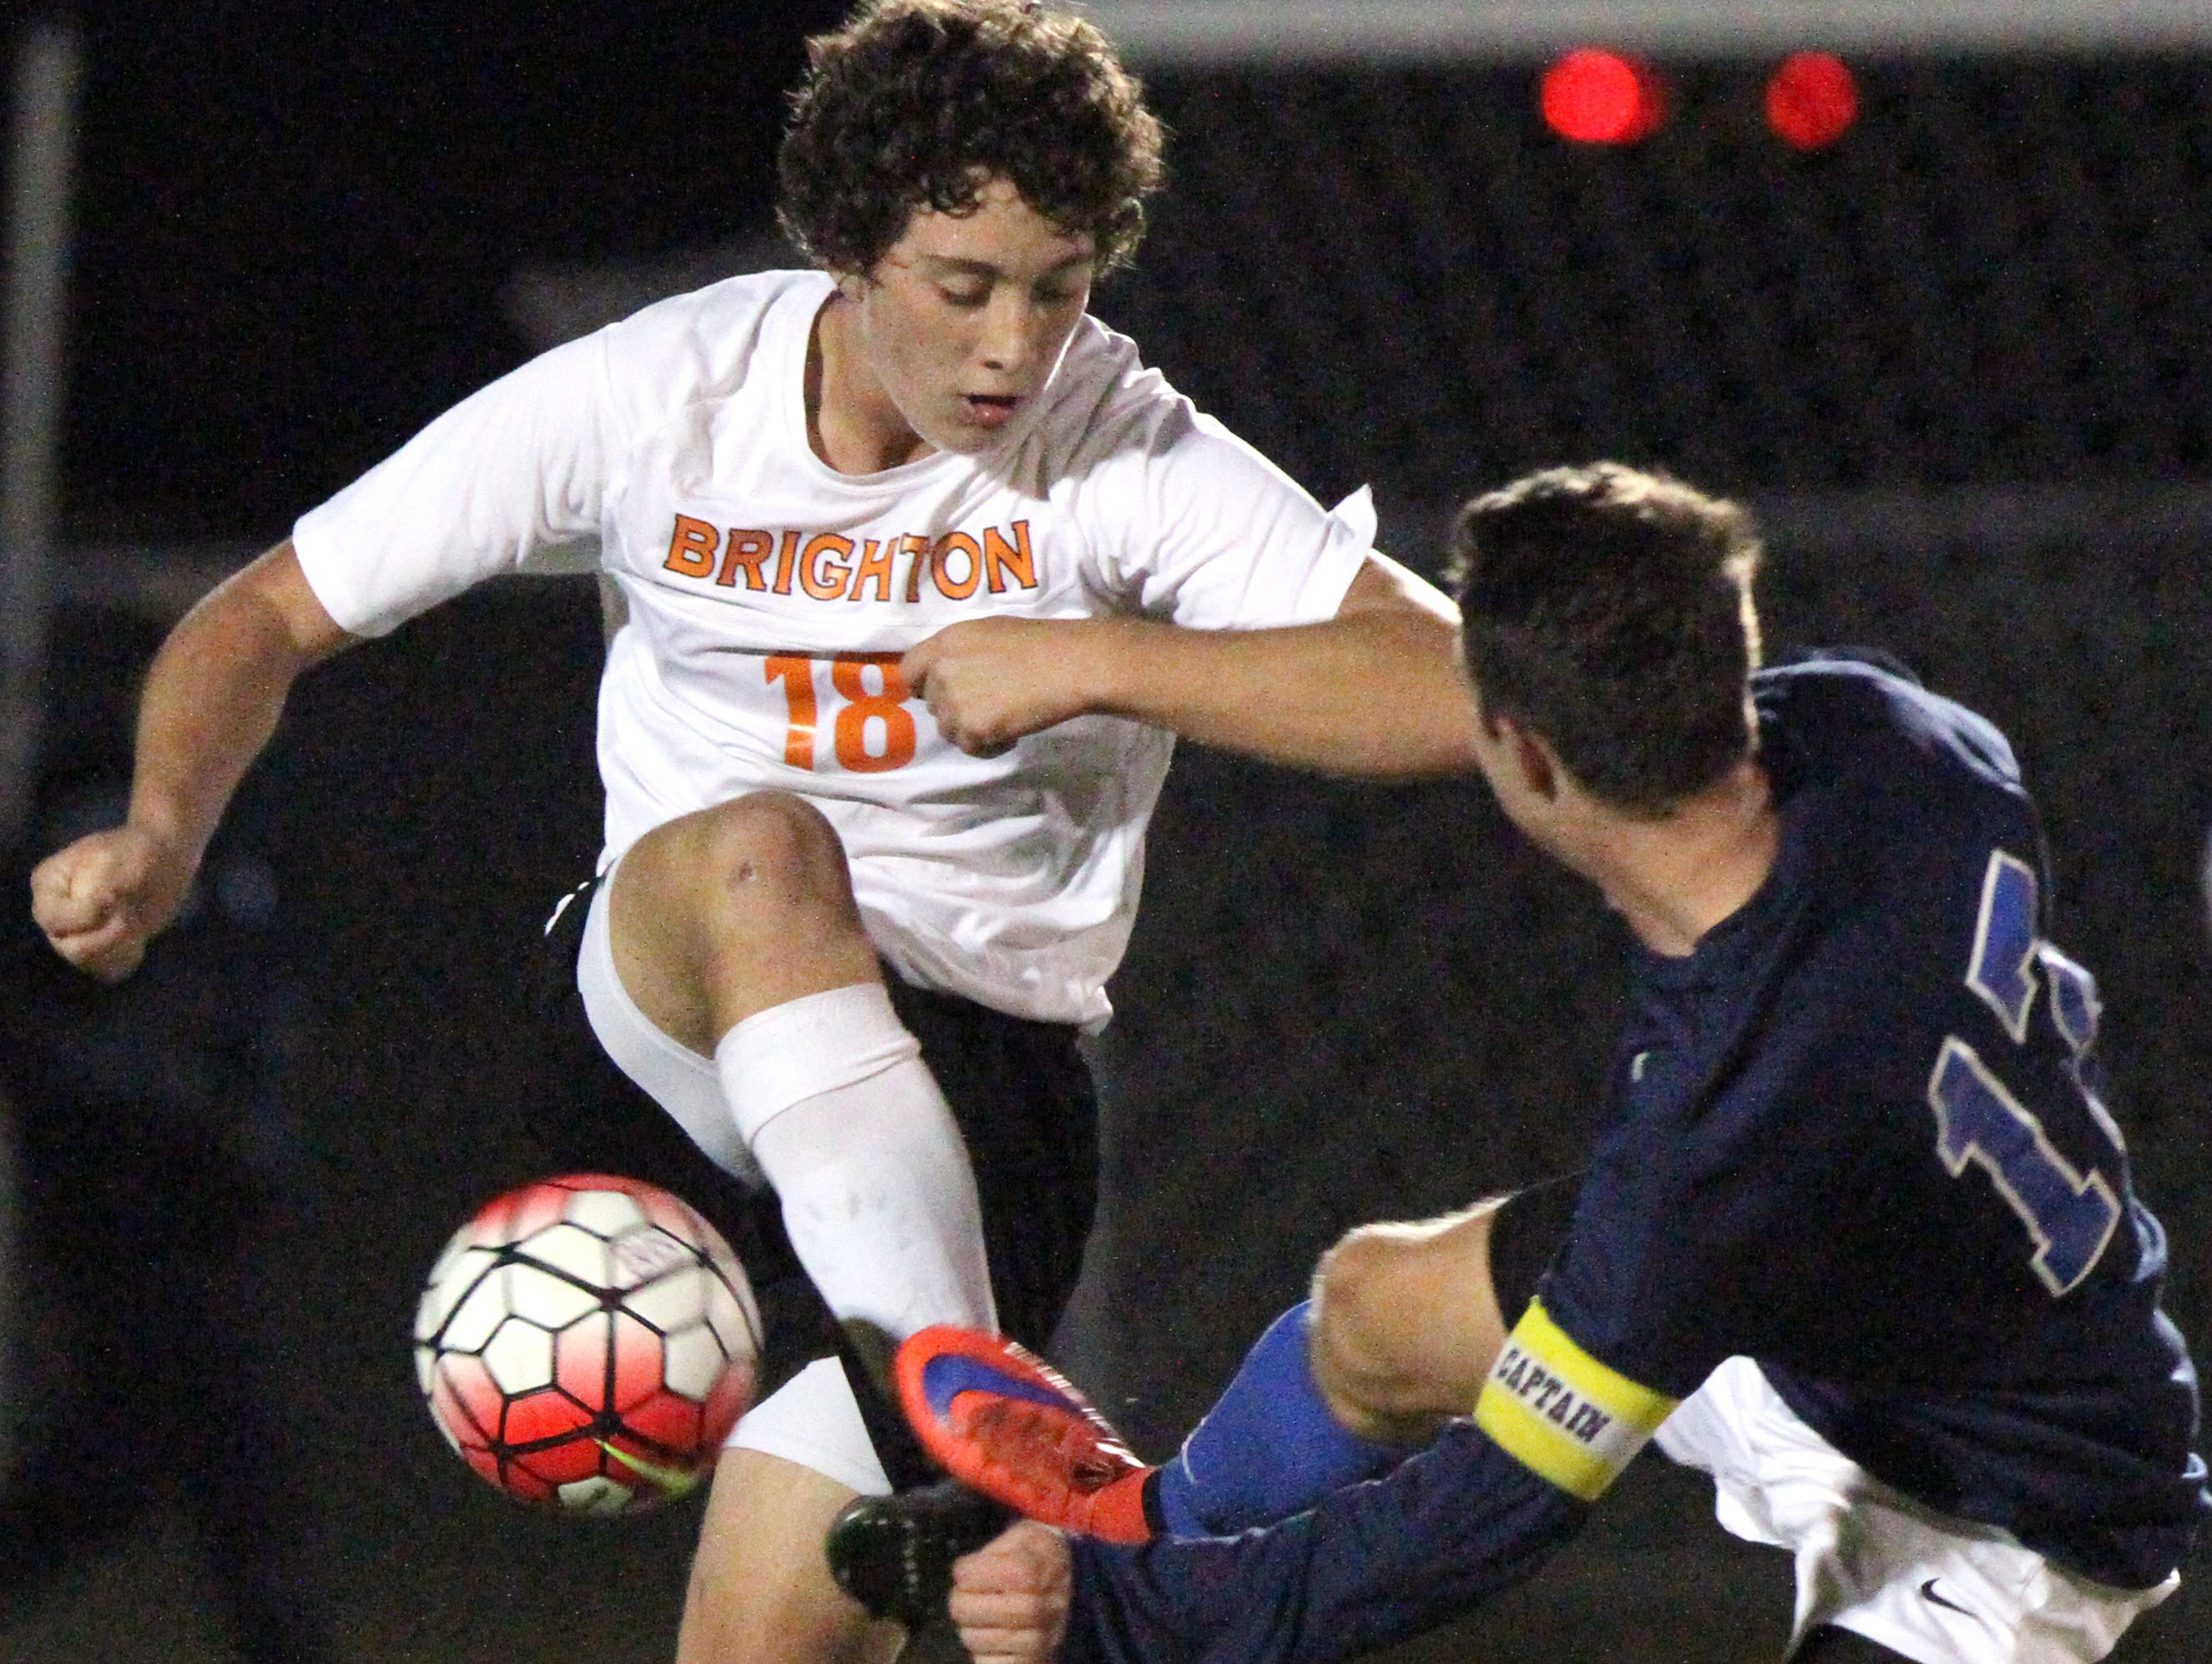 Brighton's Noah Green and his teammates were held scoreless for the third time this season and third this month in a 5-0 loss to Salem on Wednesday.